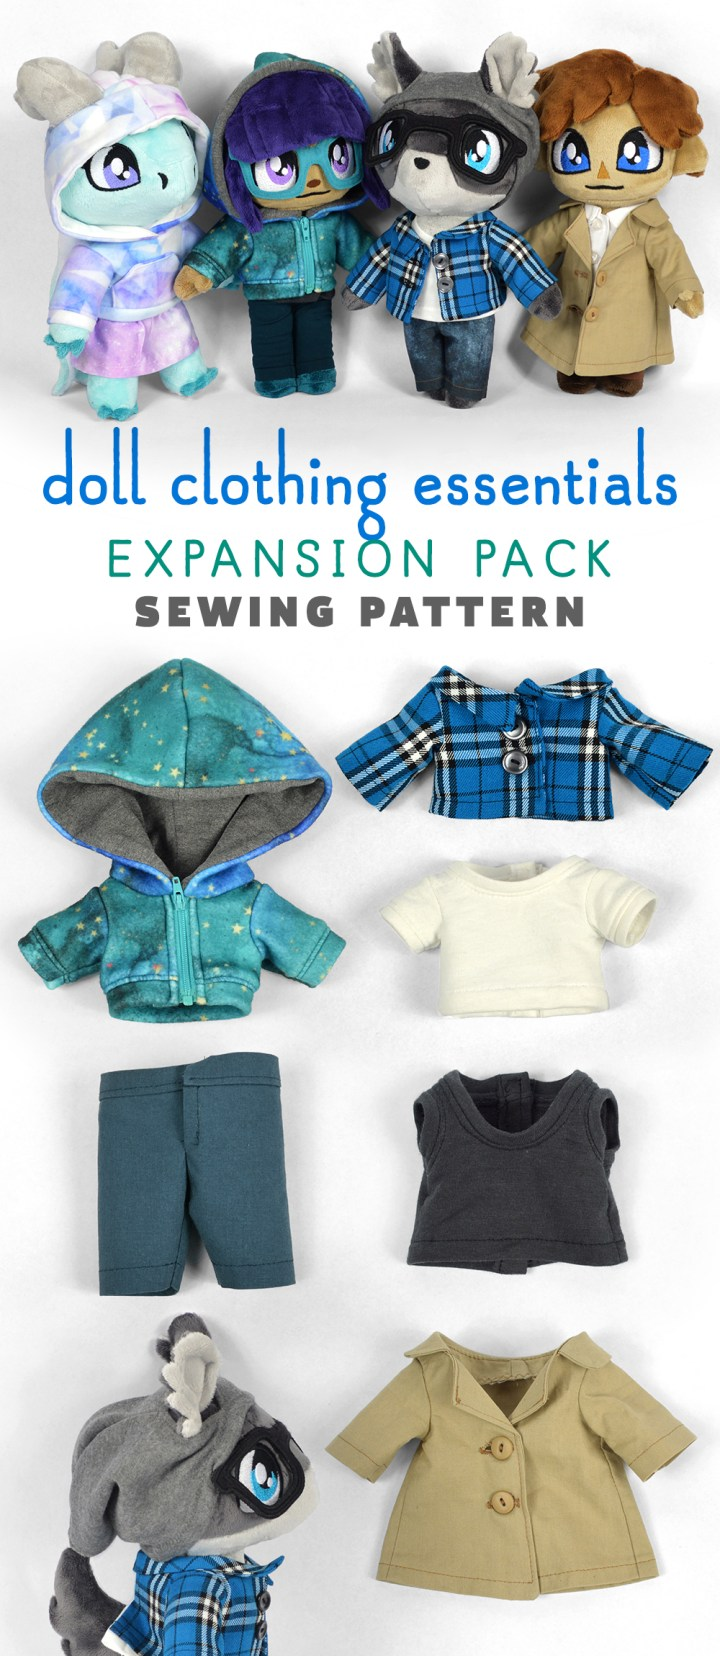 Doll Clothing Essentials Expansion Pack